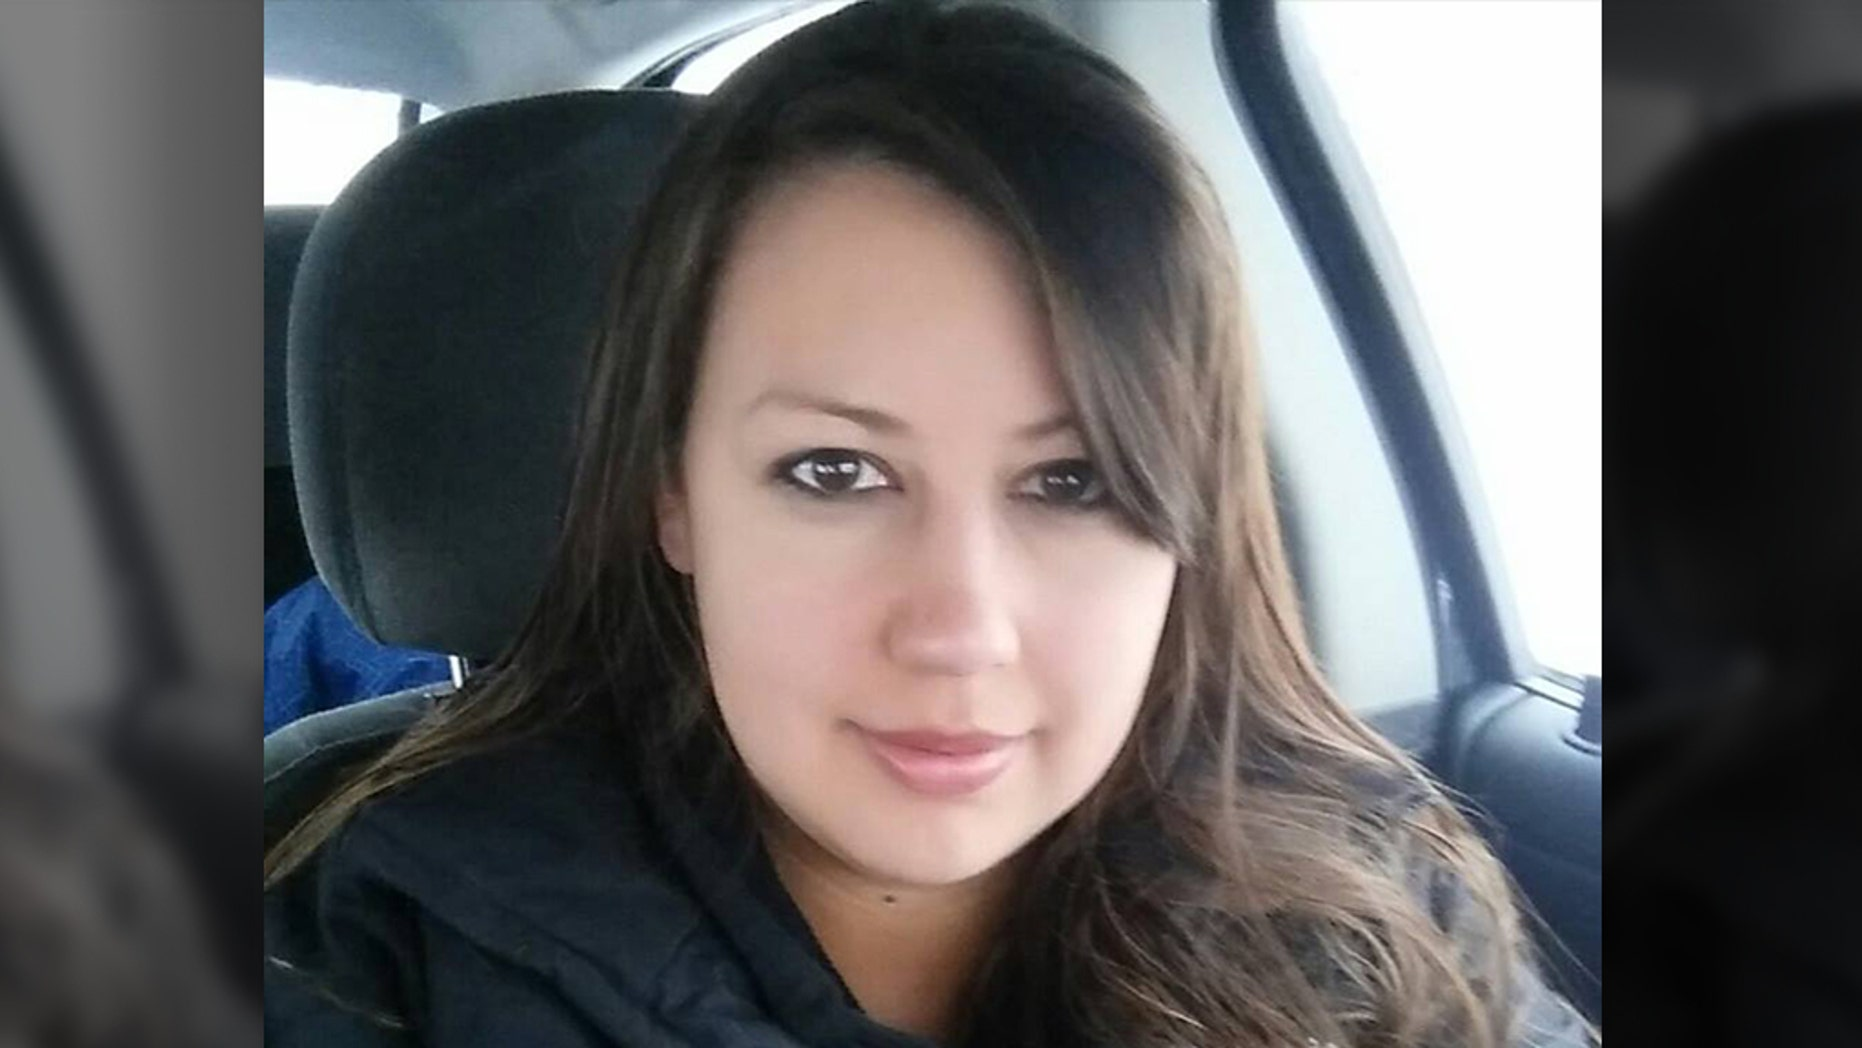 Emma LaRoque, 28, was found dead Monday in her home in Minnesota, officials said. Her two young children were also found dead and reportedly killed before she shot herself.